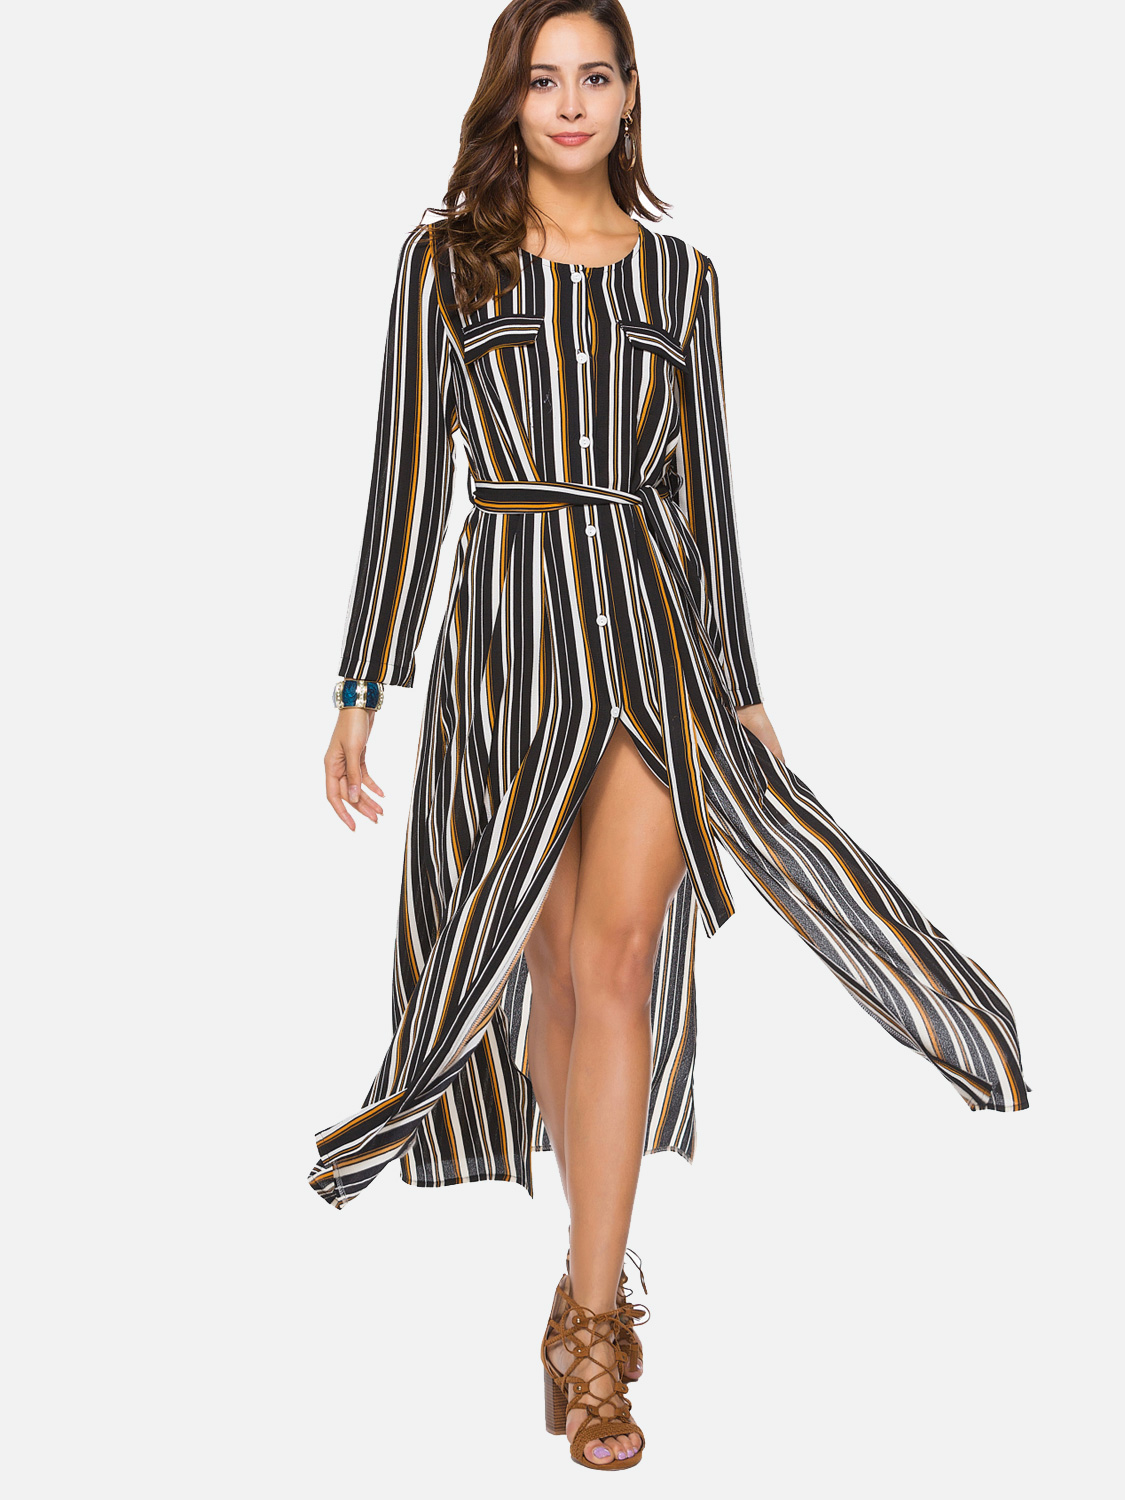 c1ea8f0c99e5 US  30 - Sexy Split Women Striped Shirts Loose Dress - www.onebling.com